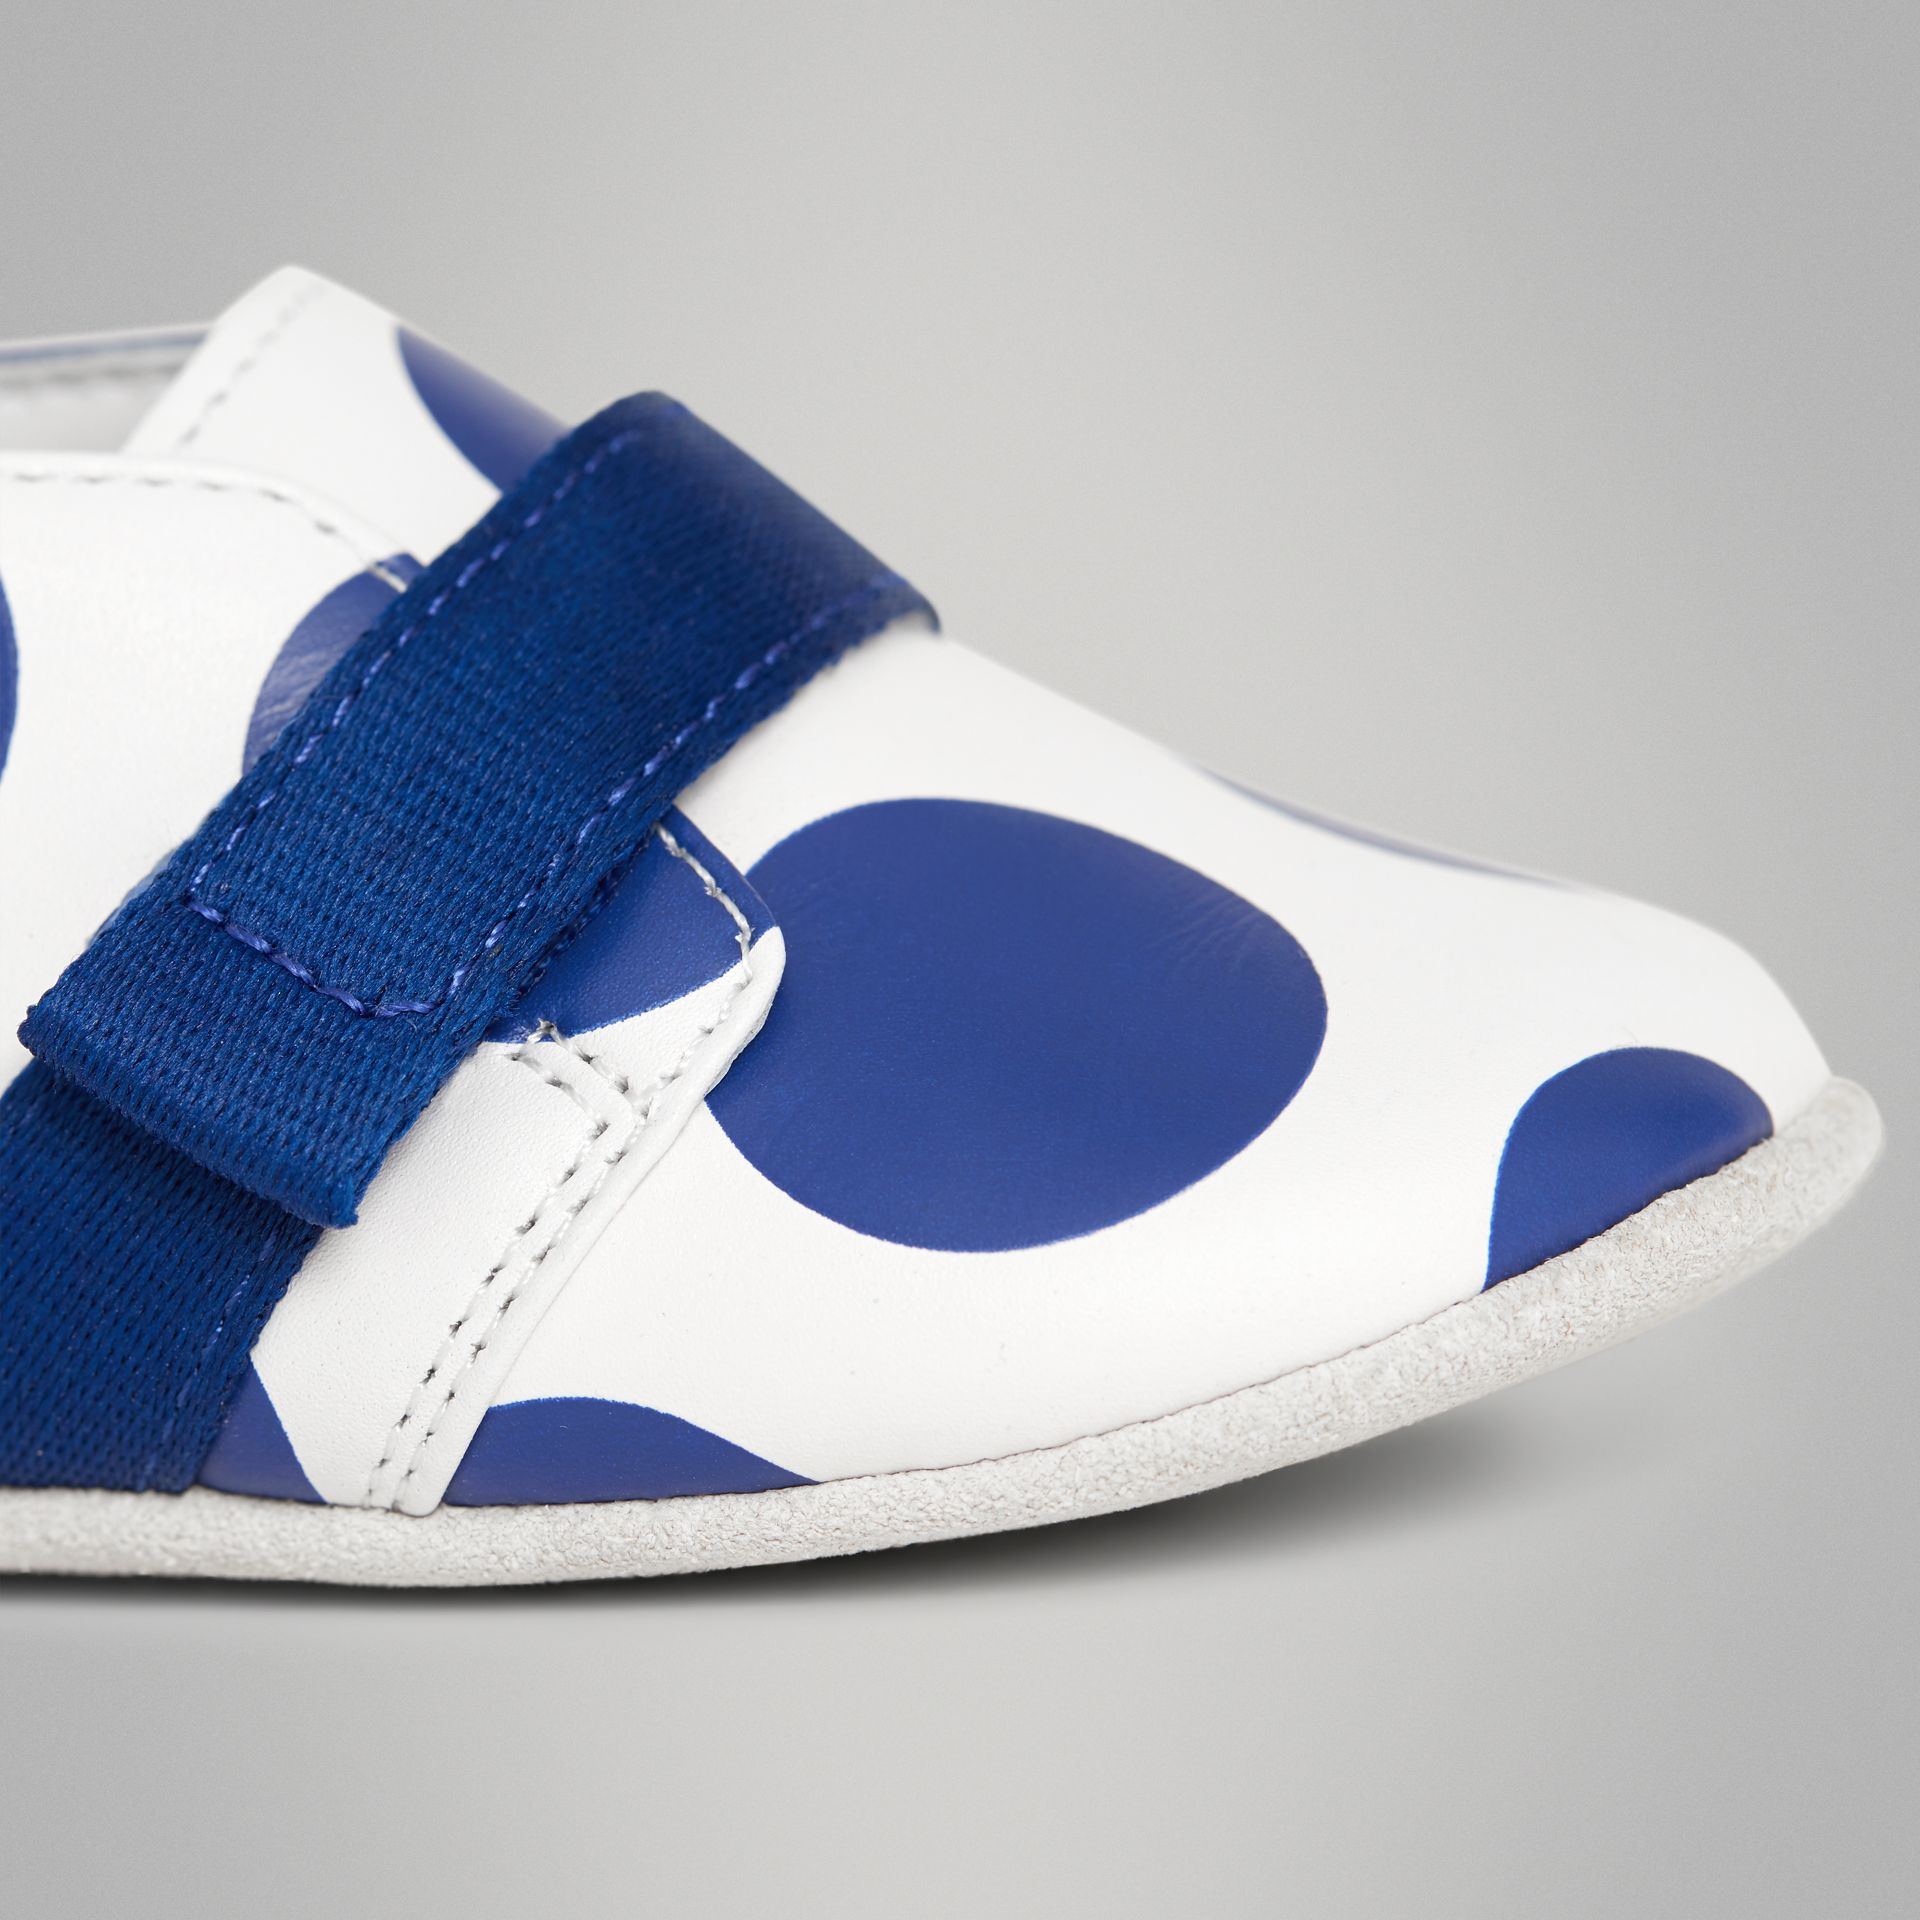 Spot Print Leather Shoes in Bright Blue - Children | Burberry - gallery image 1